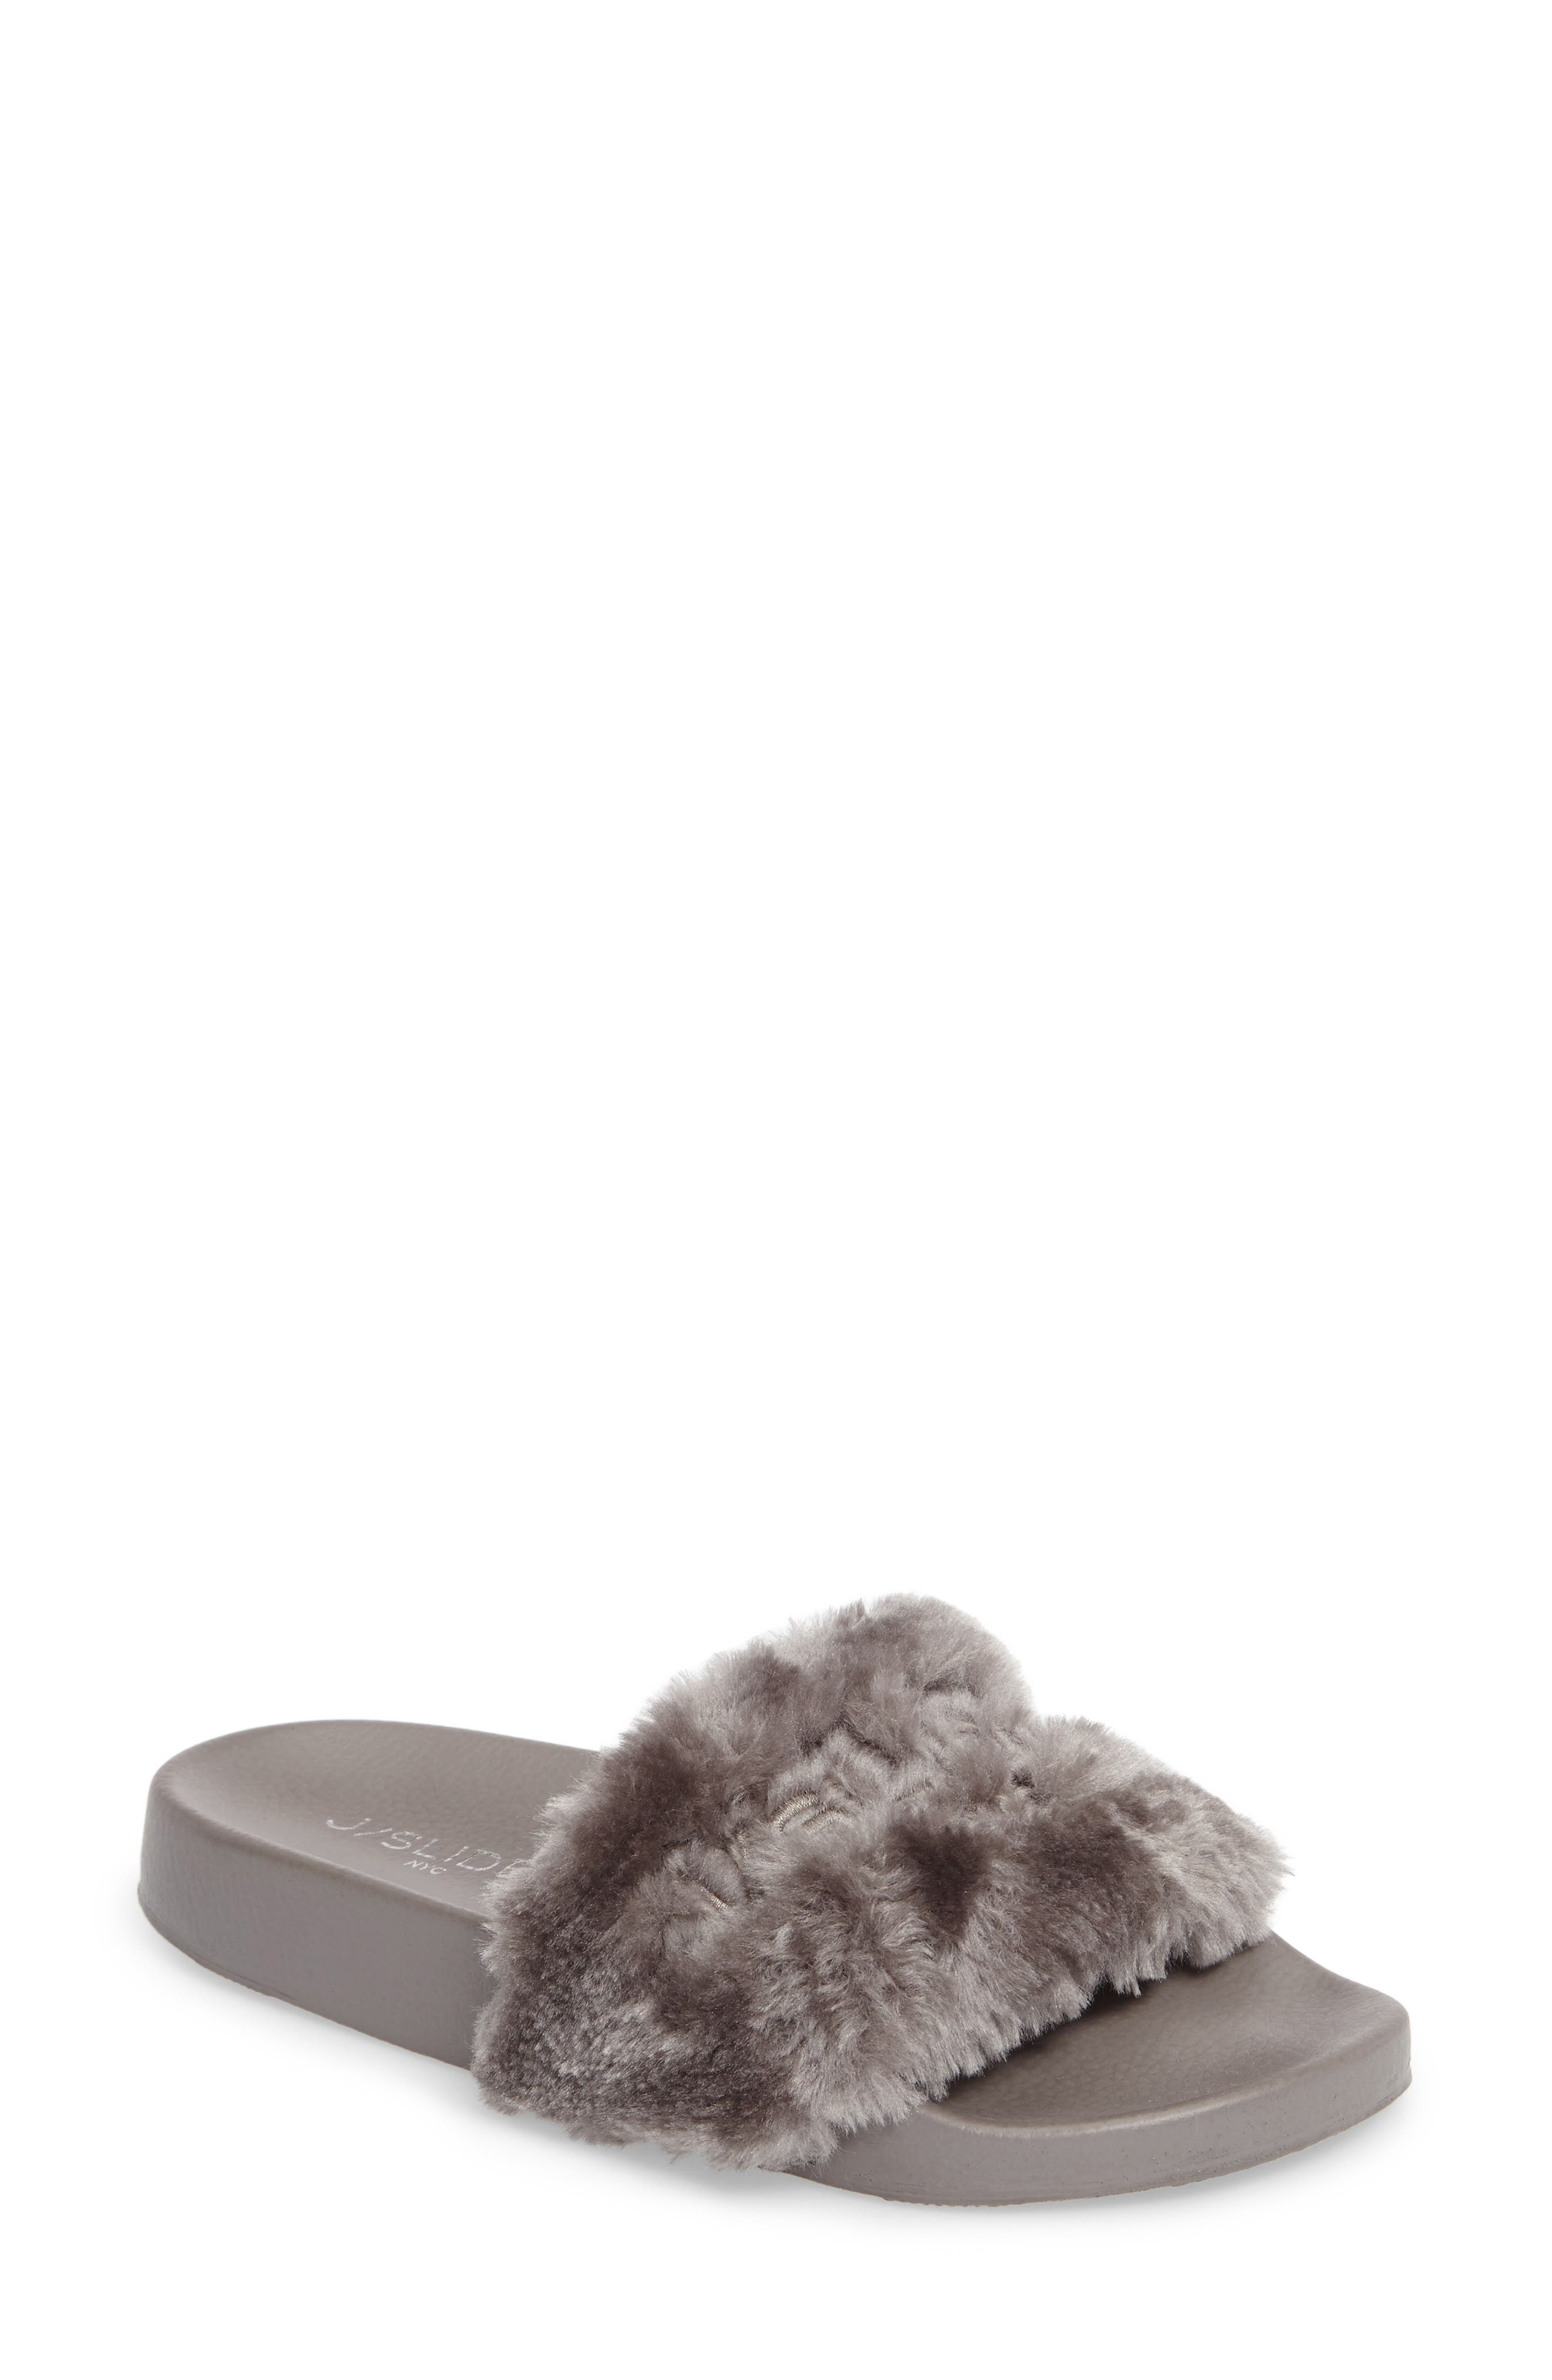 JSlides Samantha Faux Fur Slide (Women)